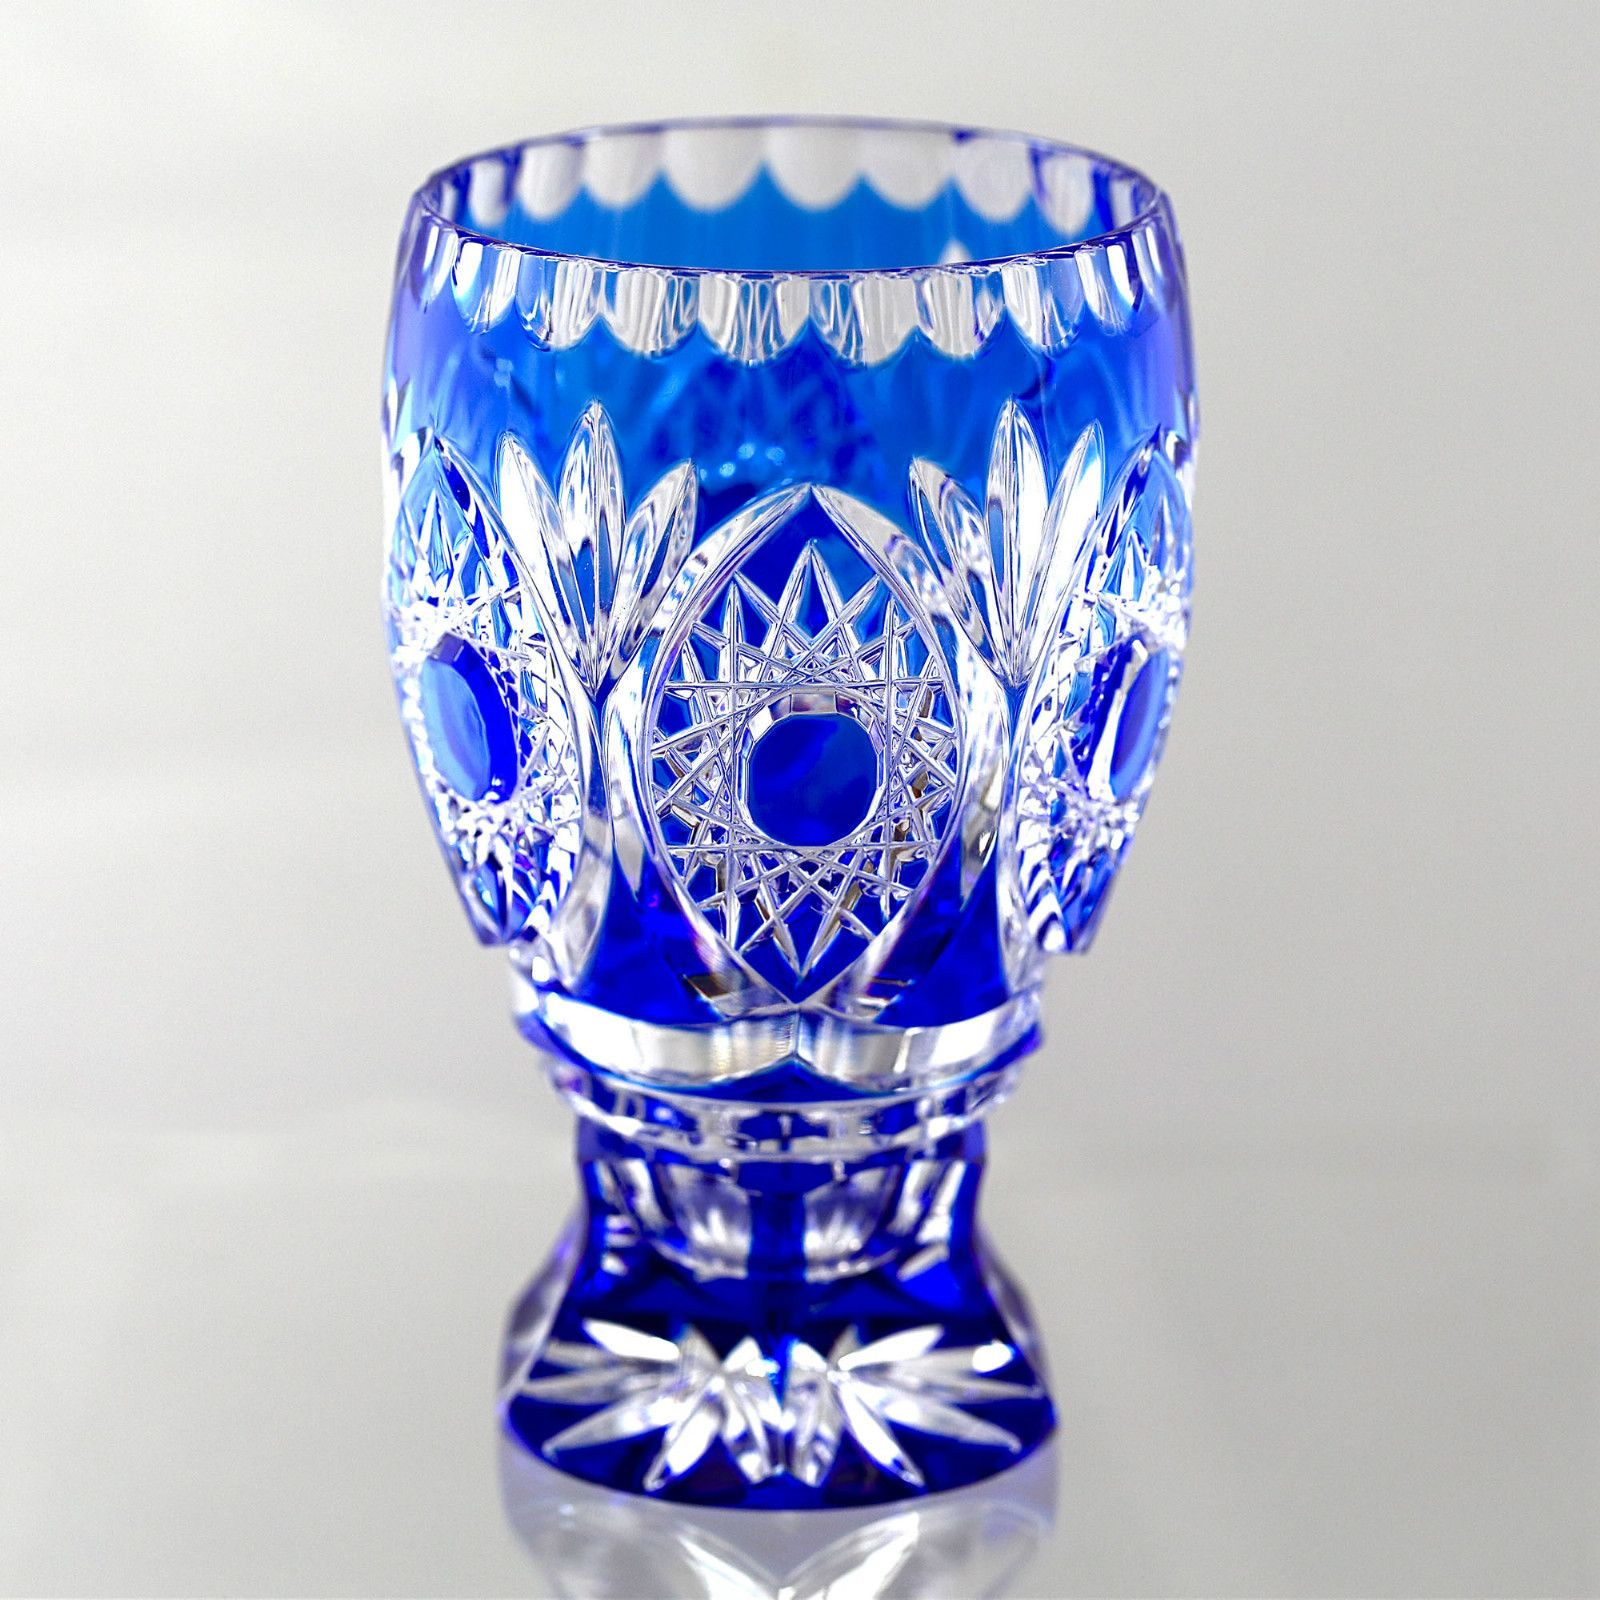 glass saint cristaux fantaisie cobalt vasecobalt bluecut de crystal cut art val vase images pinterest glasscobalt best joseph blue on catalogue lambert simon